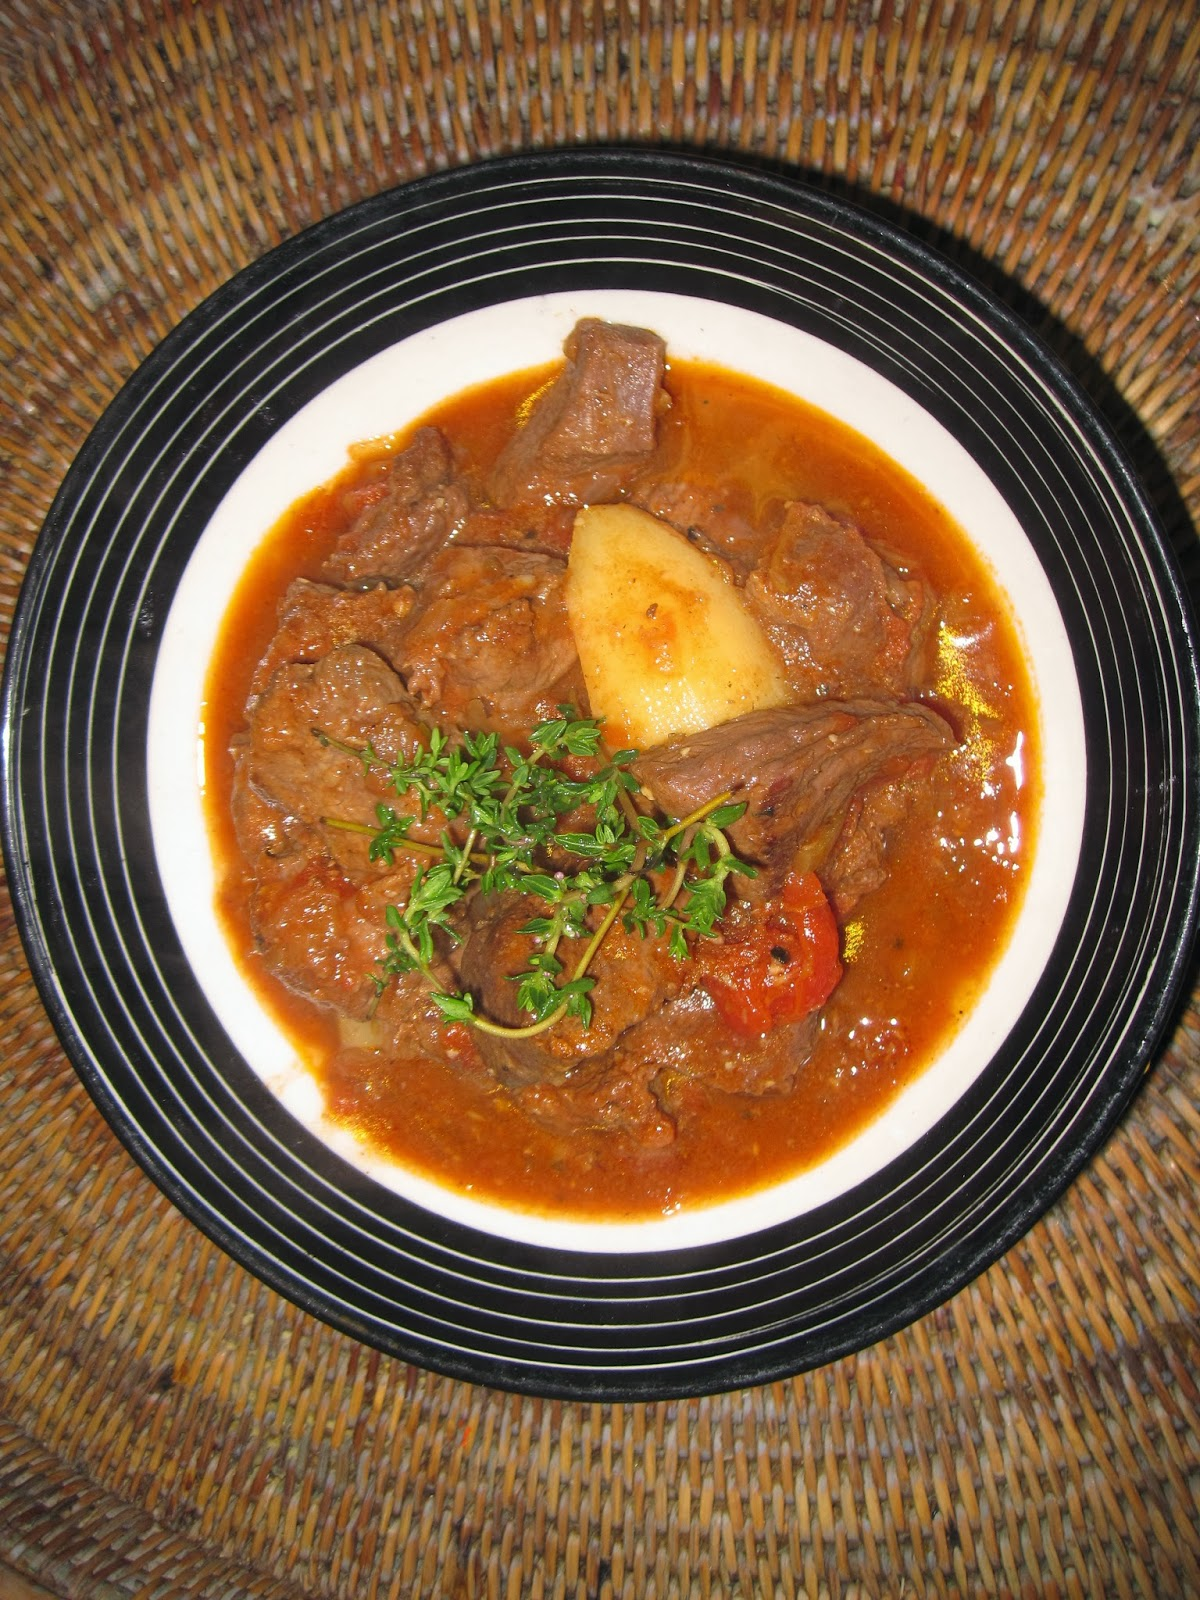 Namibian venison pot recipe edible gold gold restaurant blog forumfinder Images